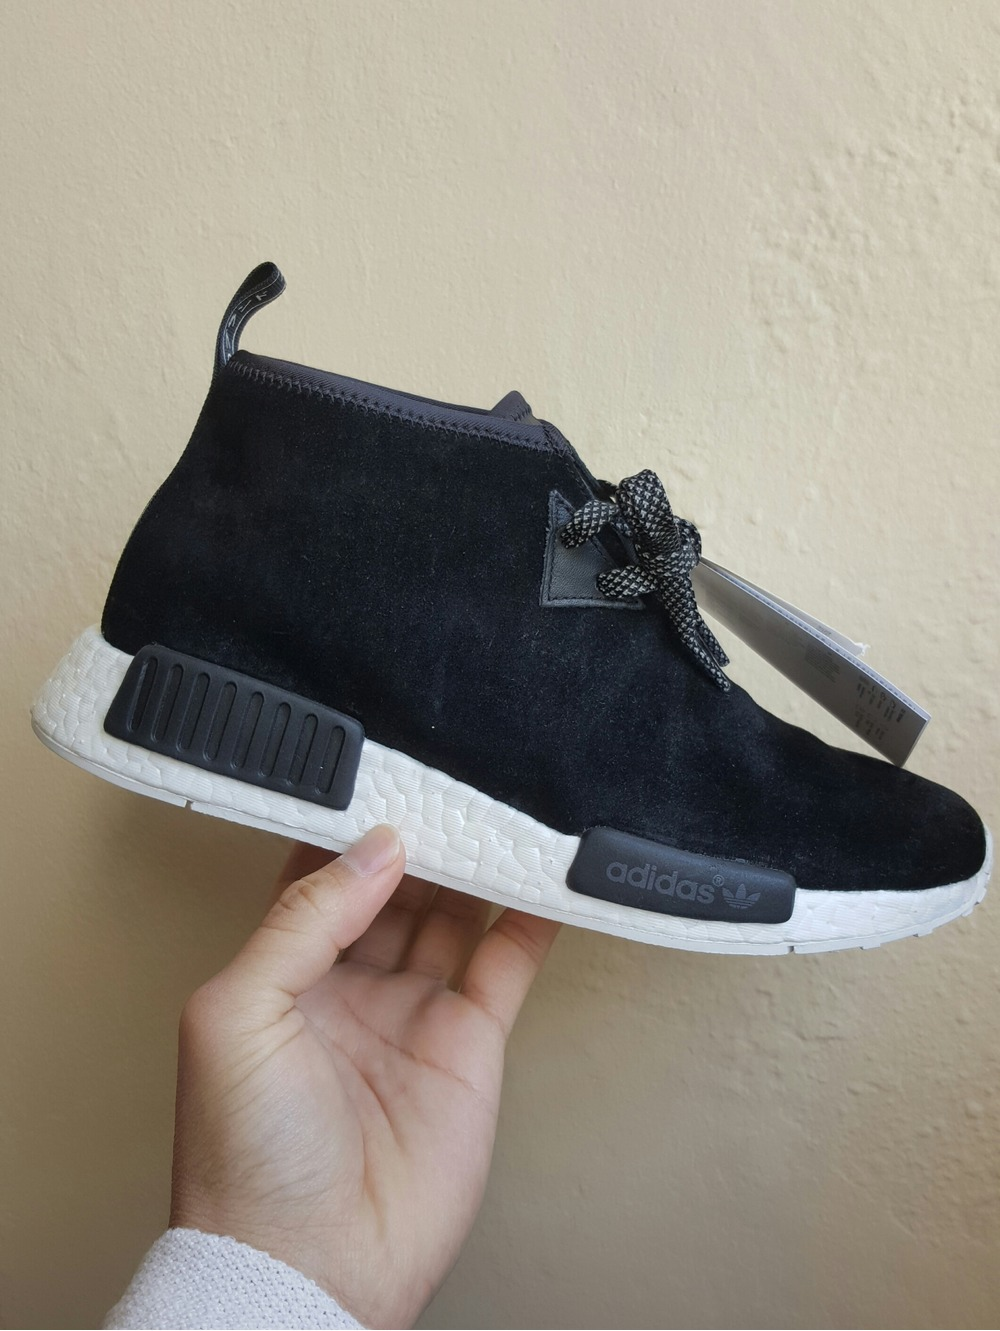 Adidas Originals NMD C1 Chukka Black Suede 11US New in Box DS 9b4a30400